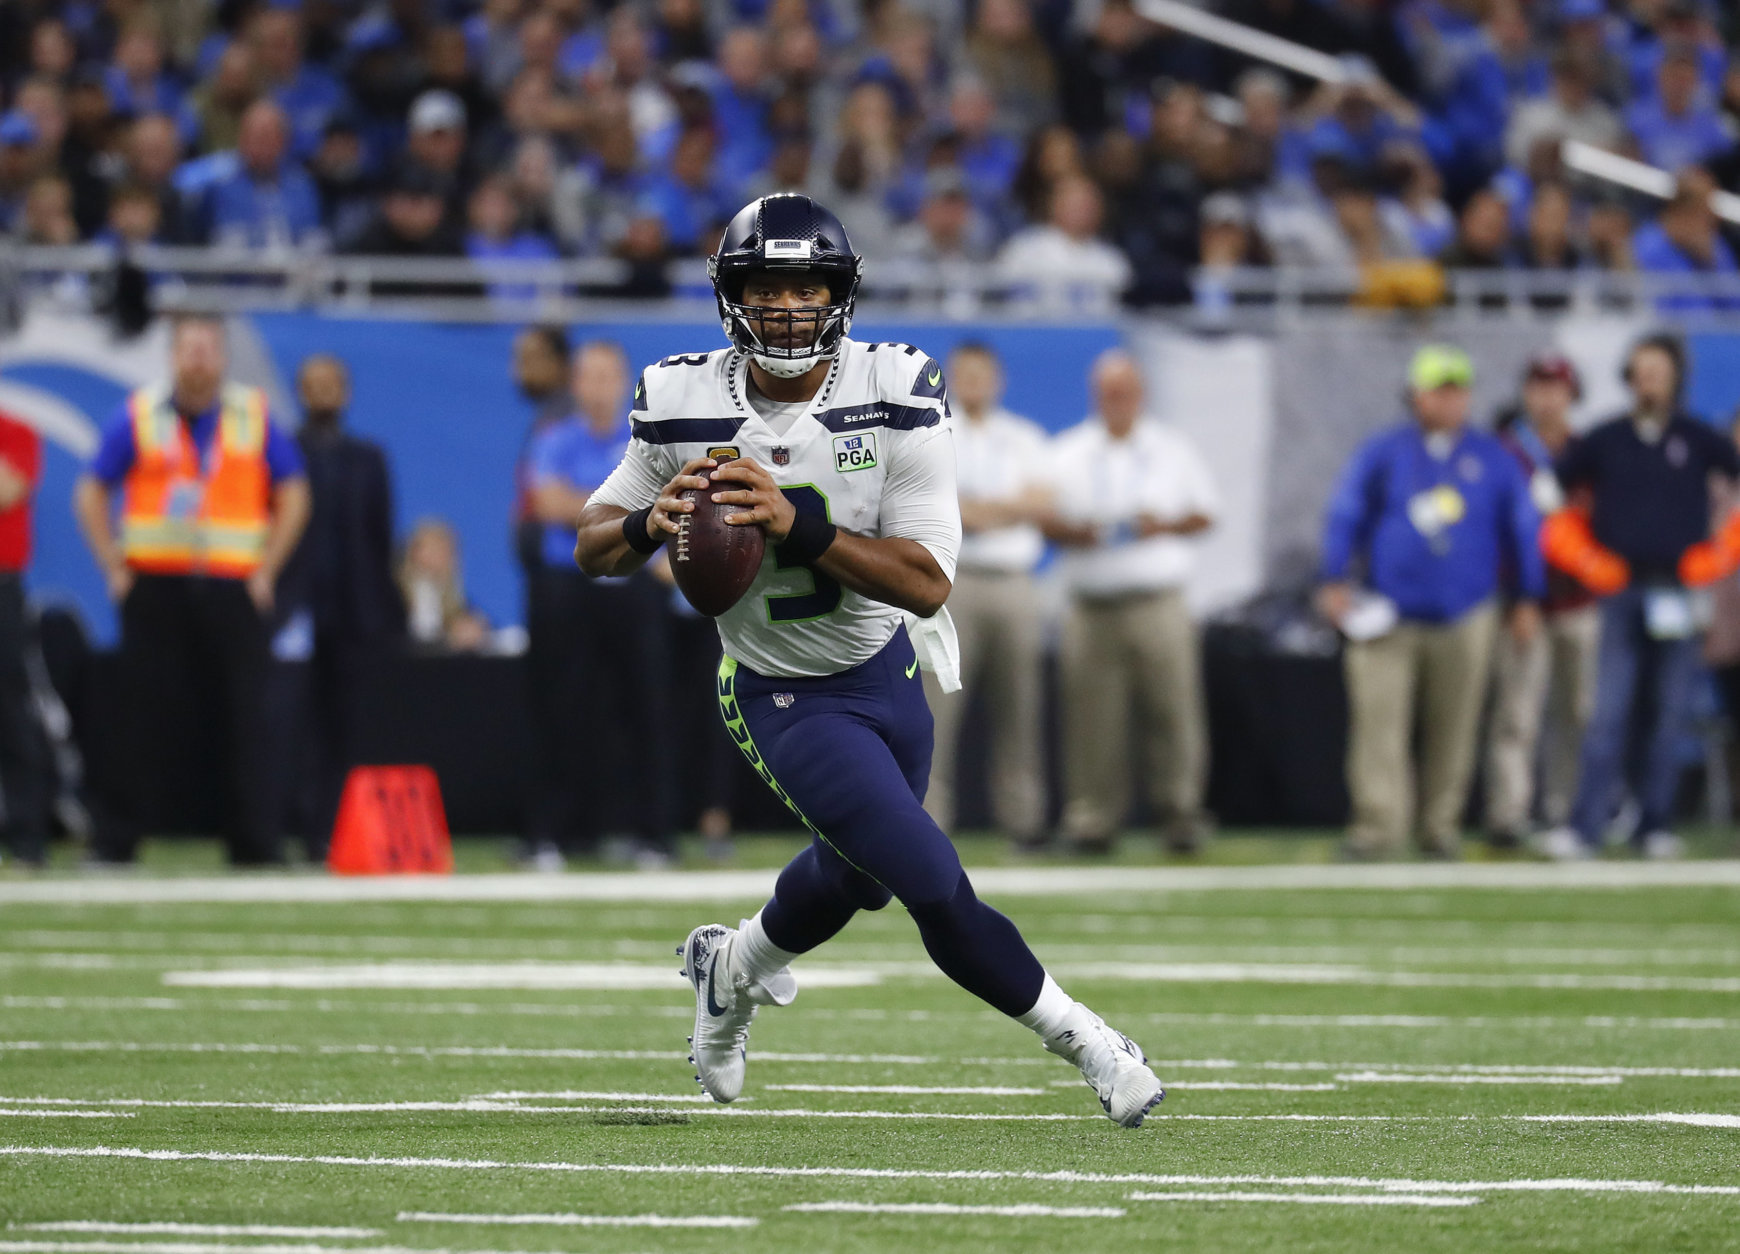 Seattle Seahawks quarterback Russell Wilson rolls out to pass against the Detroit Lions during an NFL football game in Detroit, Sunday, Oct. 28, 2018. (AP Photo/Paul Sancya)